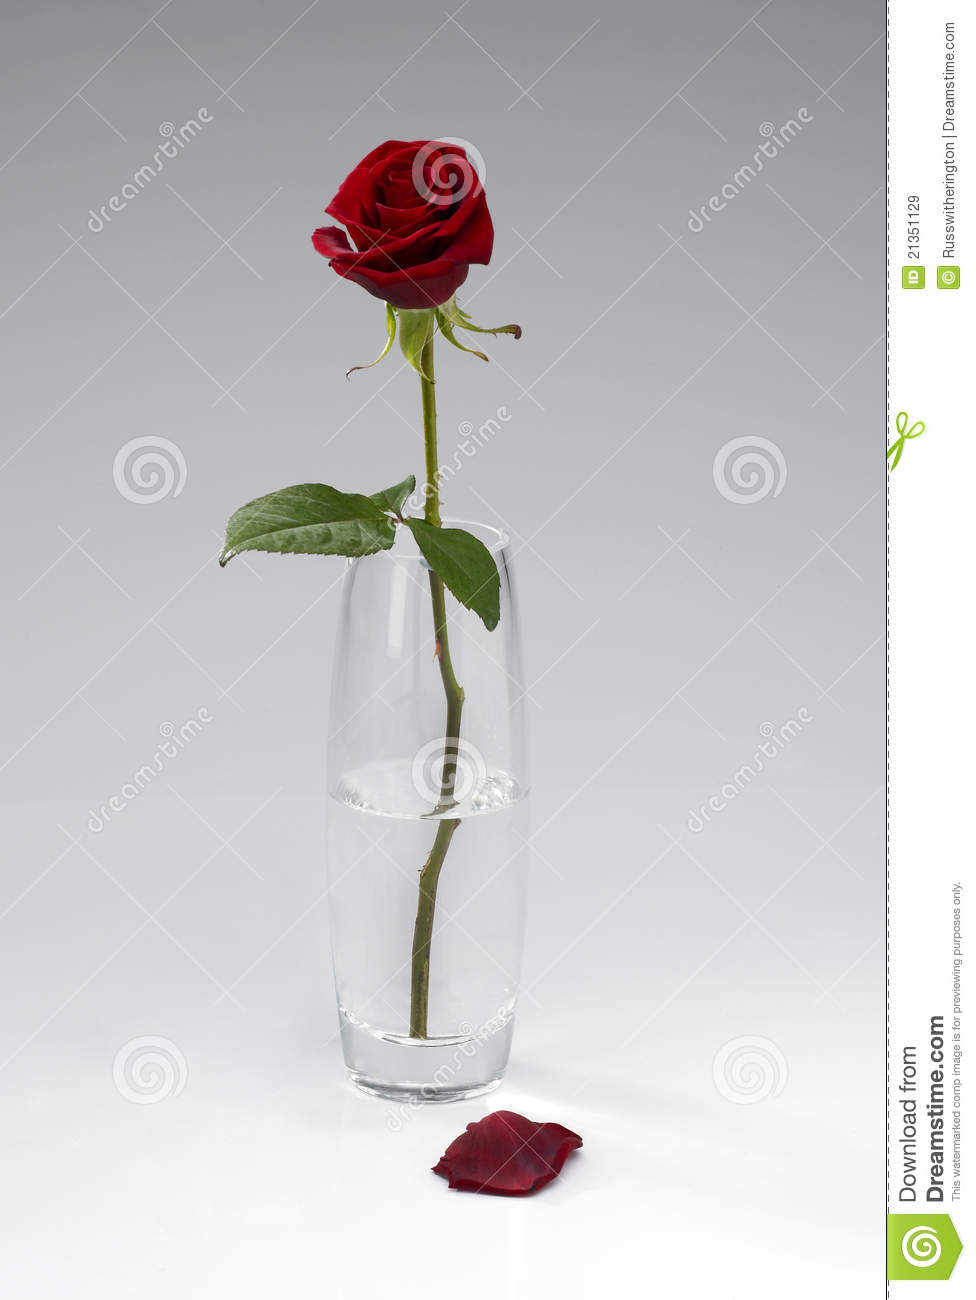 Single rose in vase stock image image of rose bloom 21351129 single rose in vase floridaeventfo Choice Image